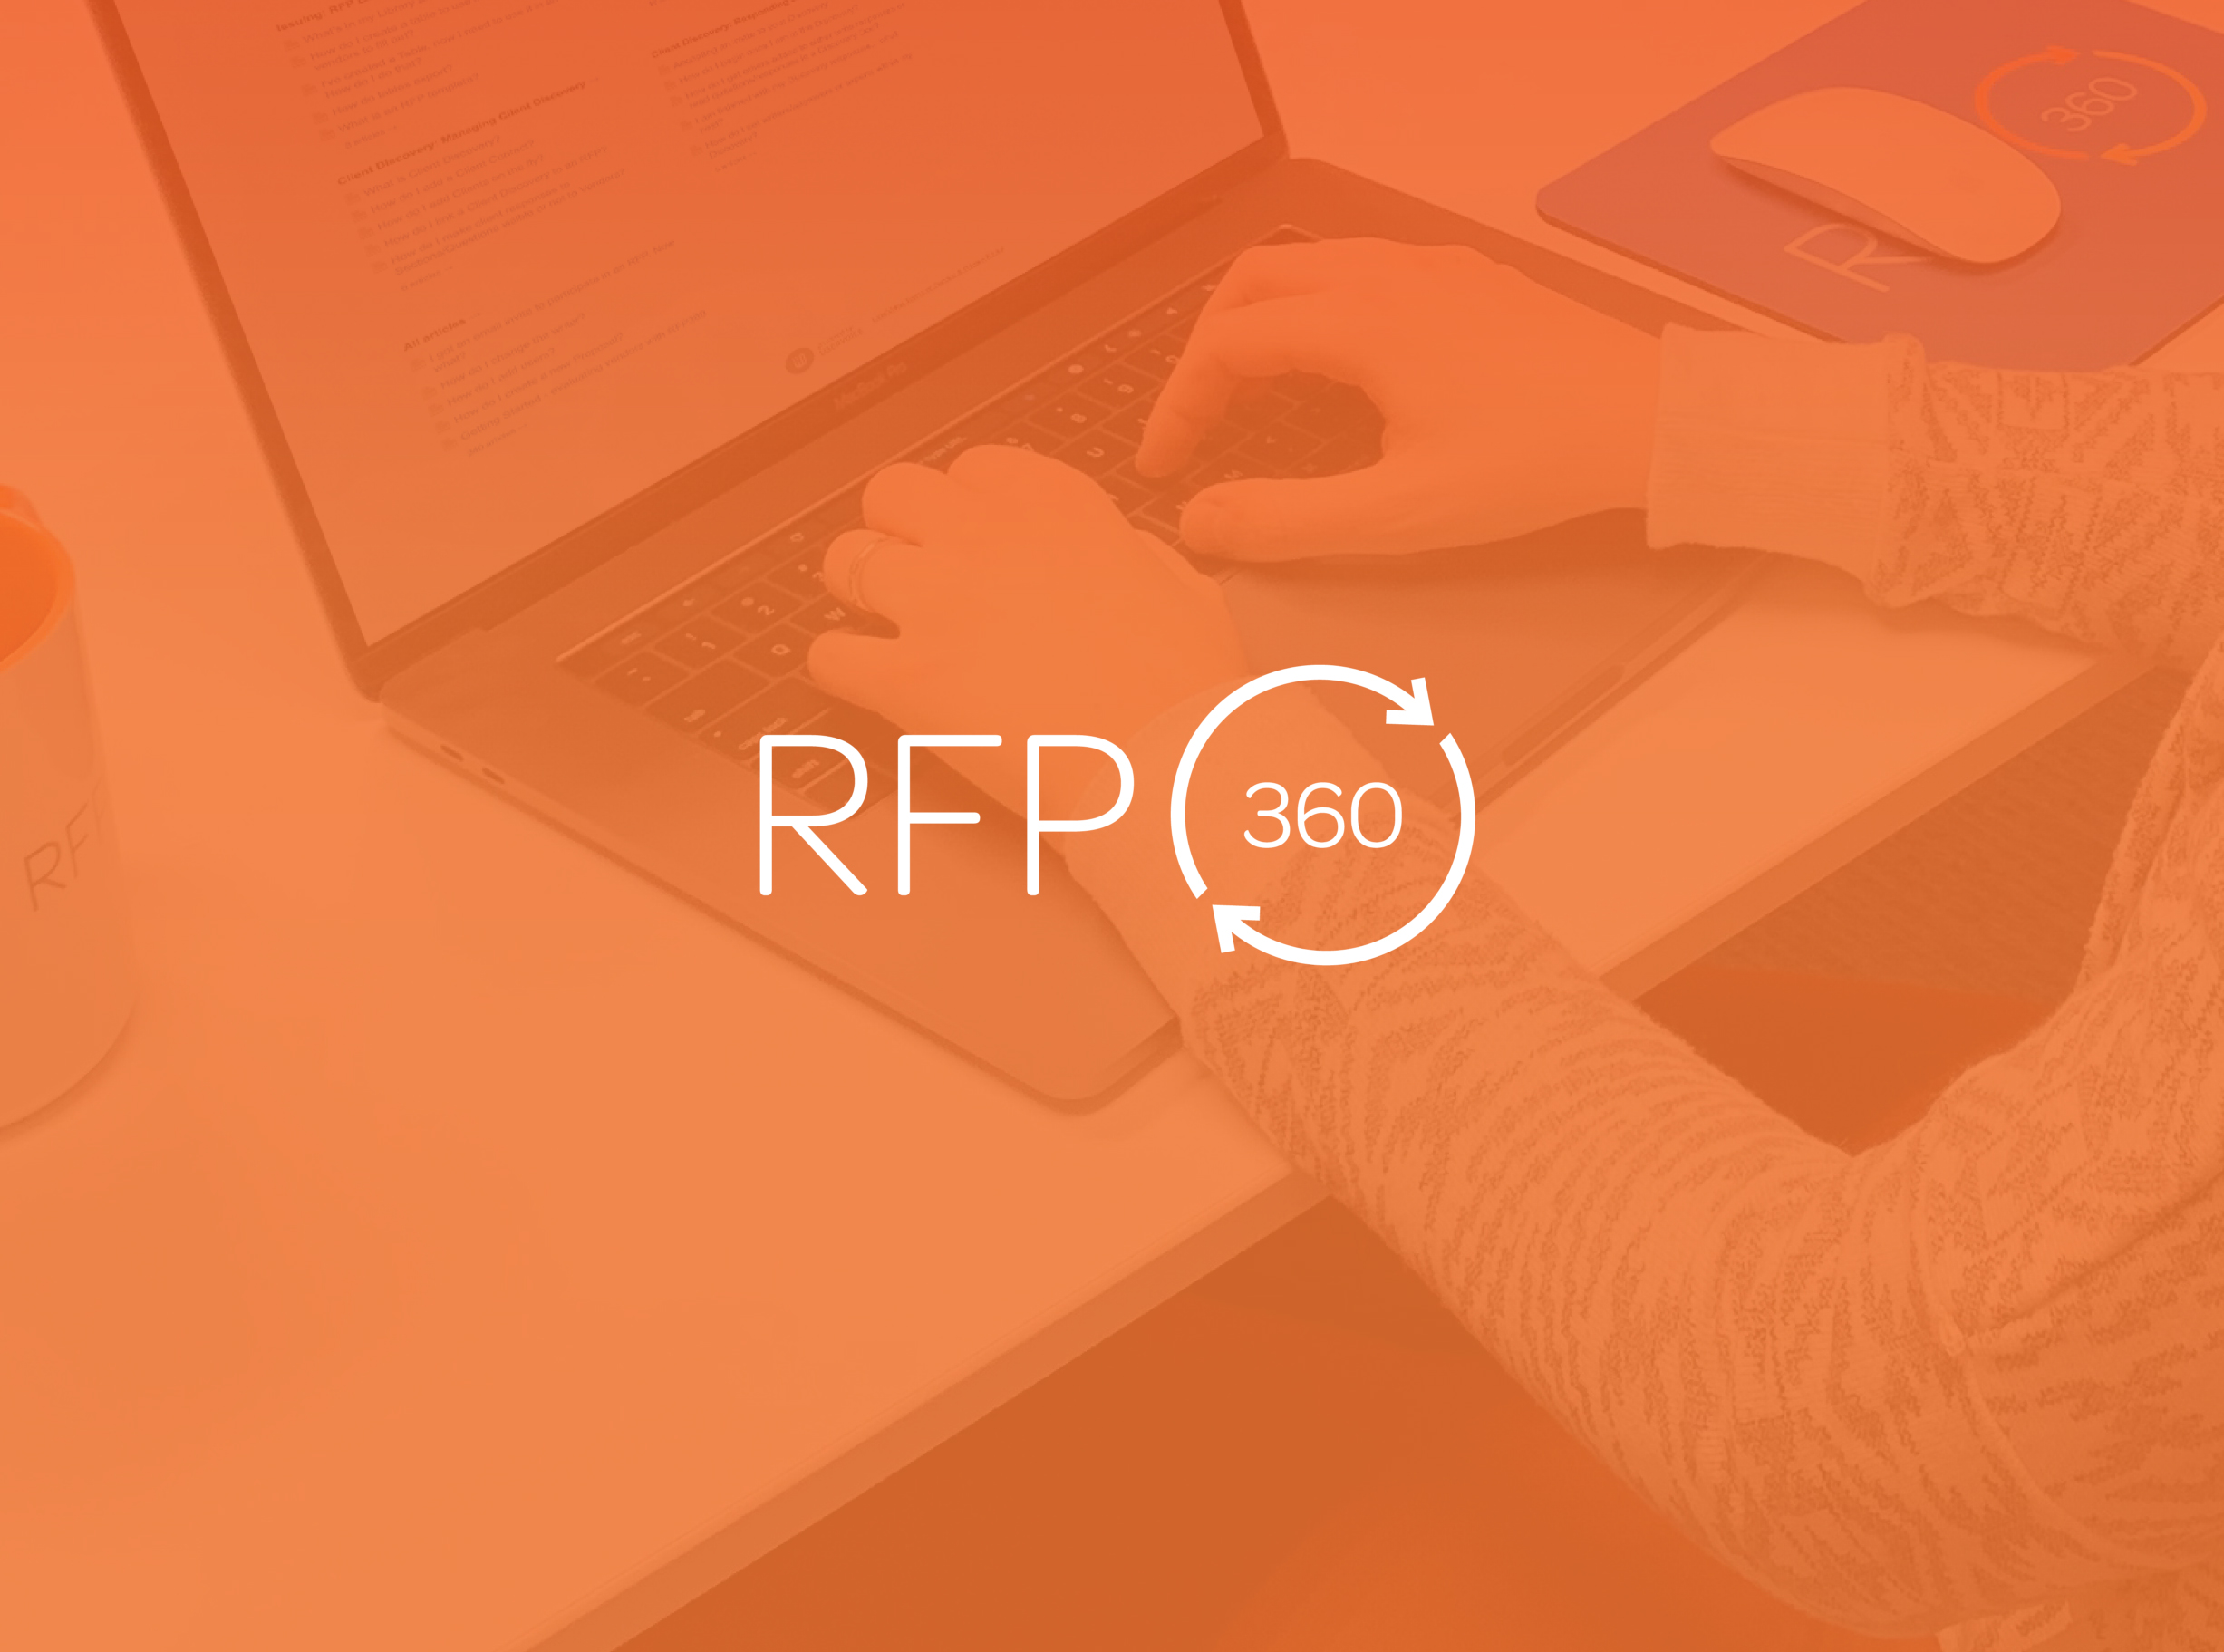 RFP360 Contact Us Form